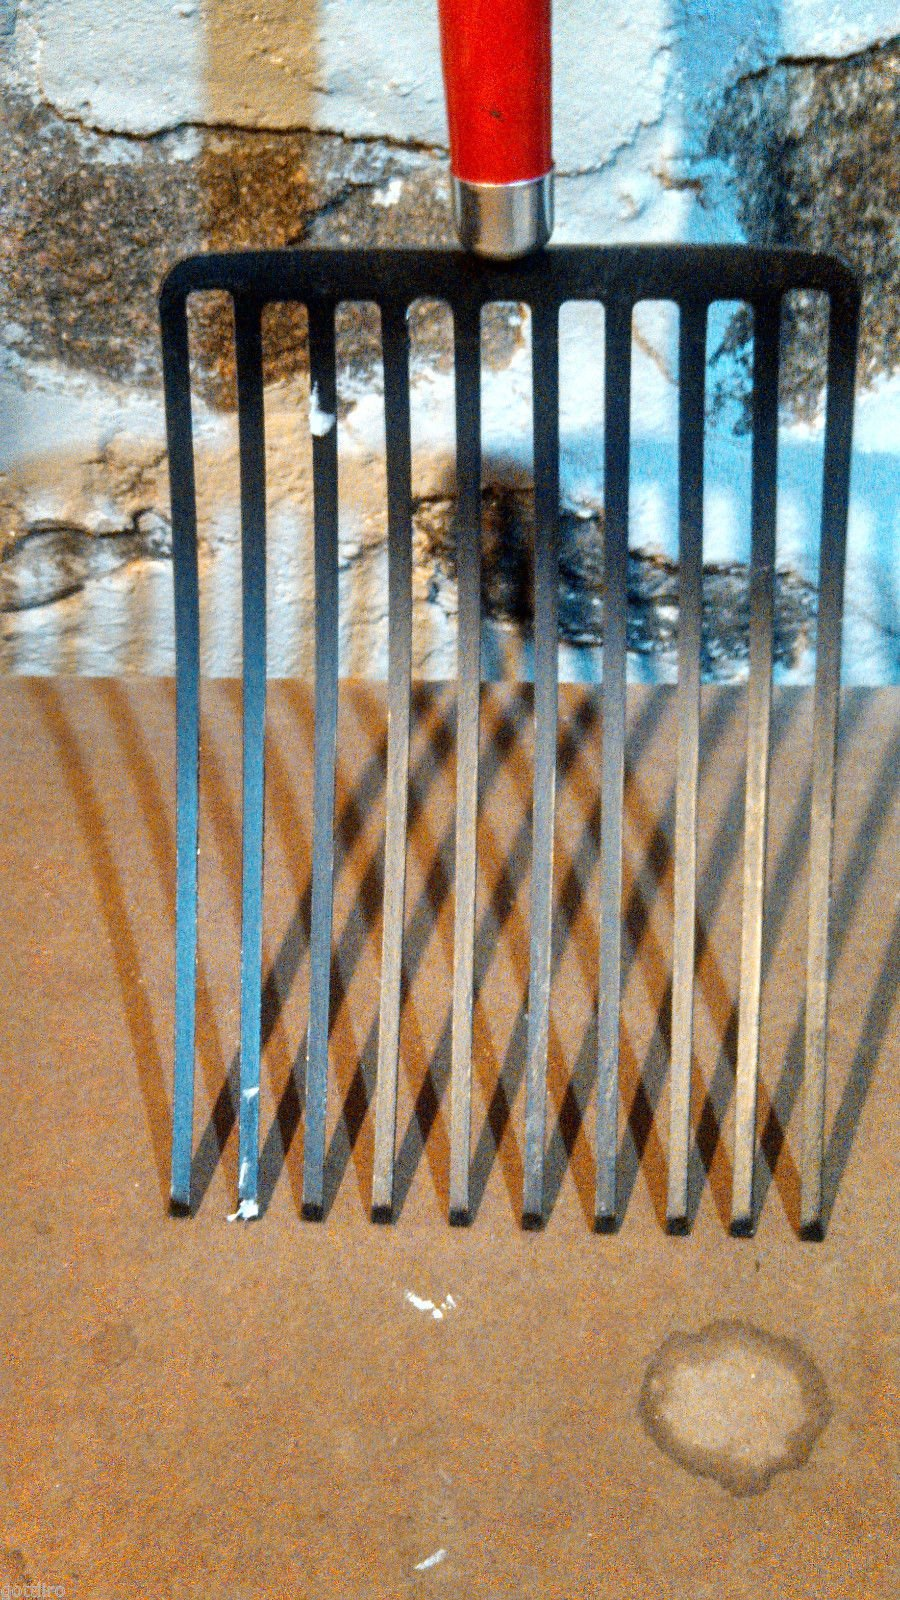 Heavy Duty Professional Duty Clam Fork - For Clamming by RAZORBACK (Image #1)